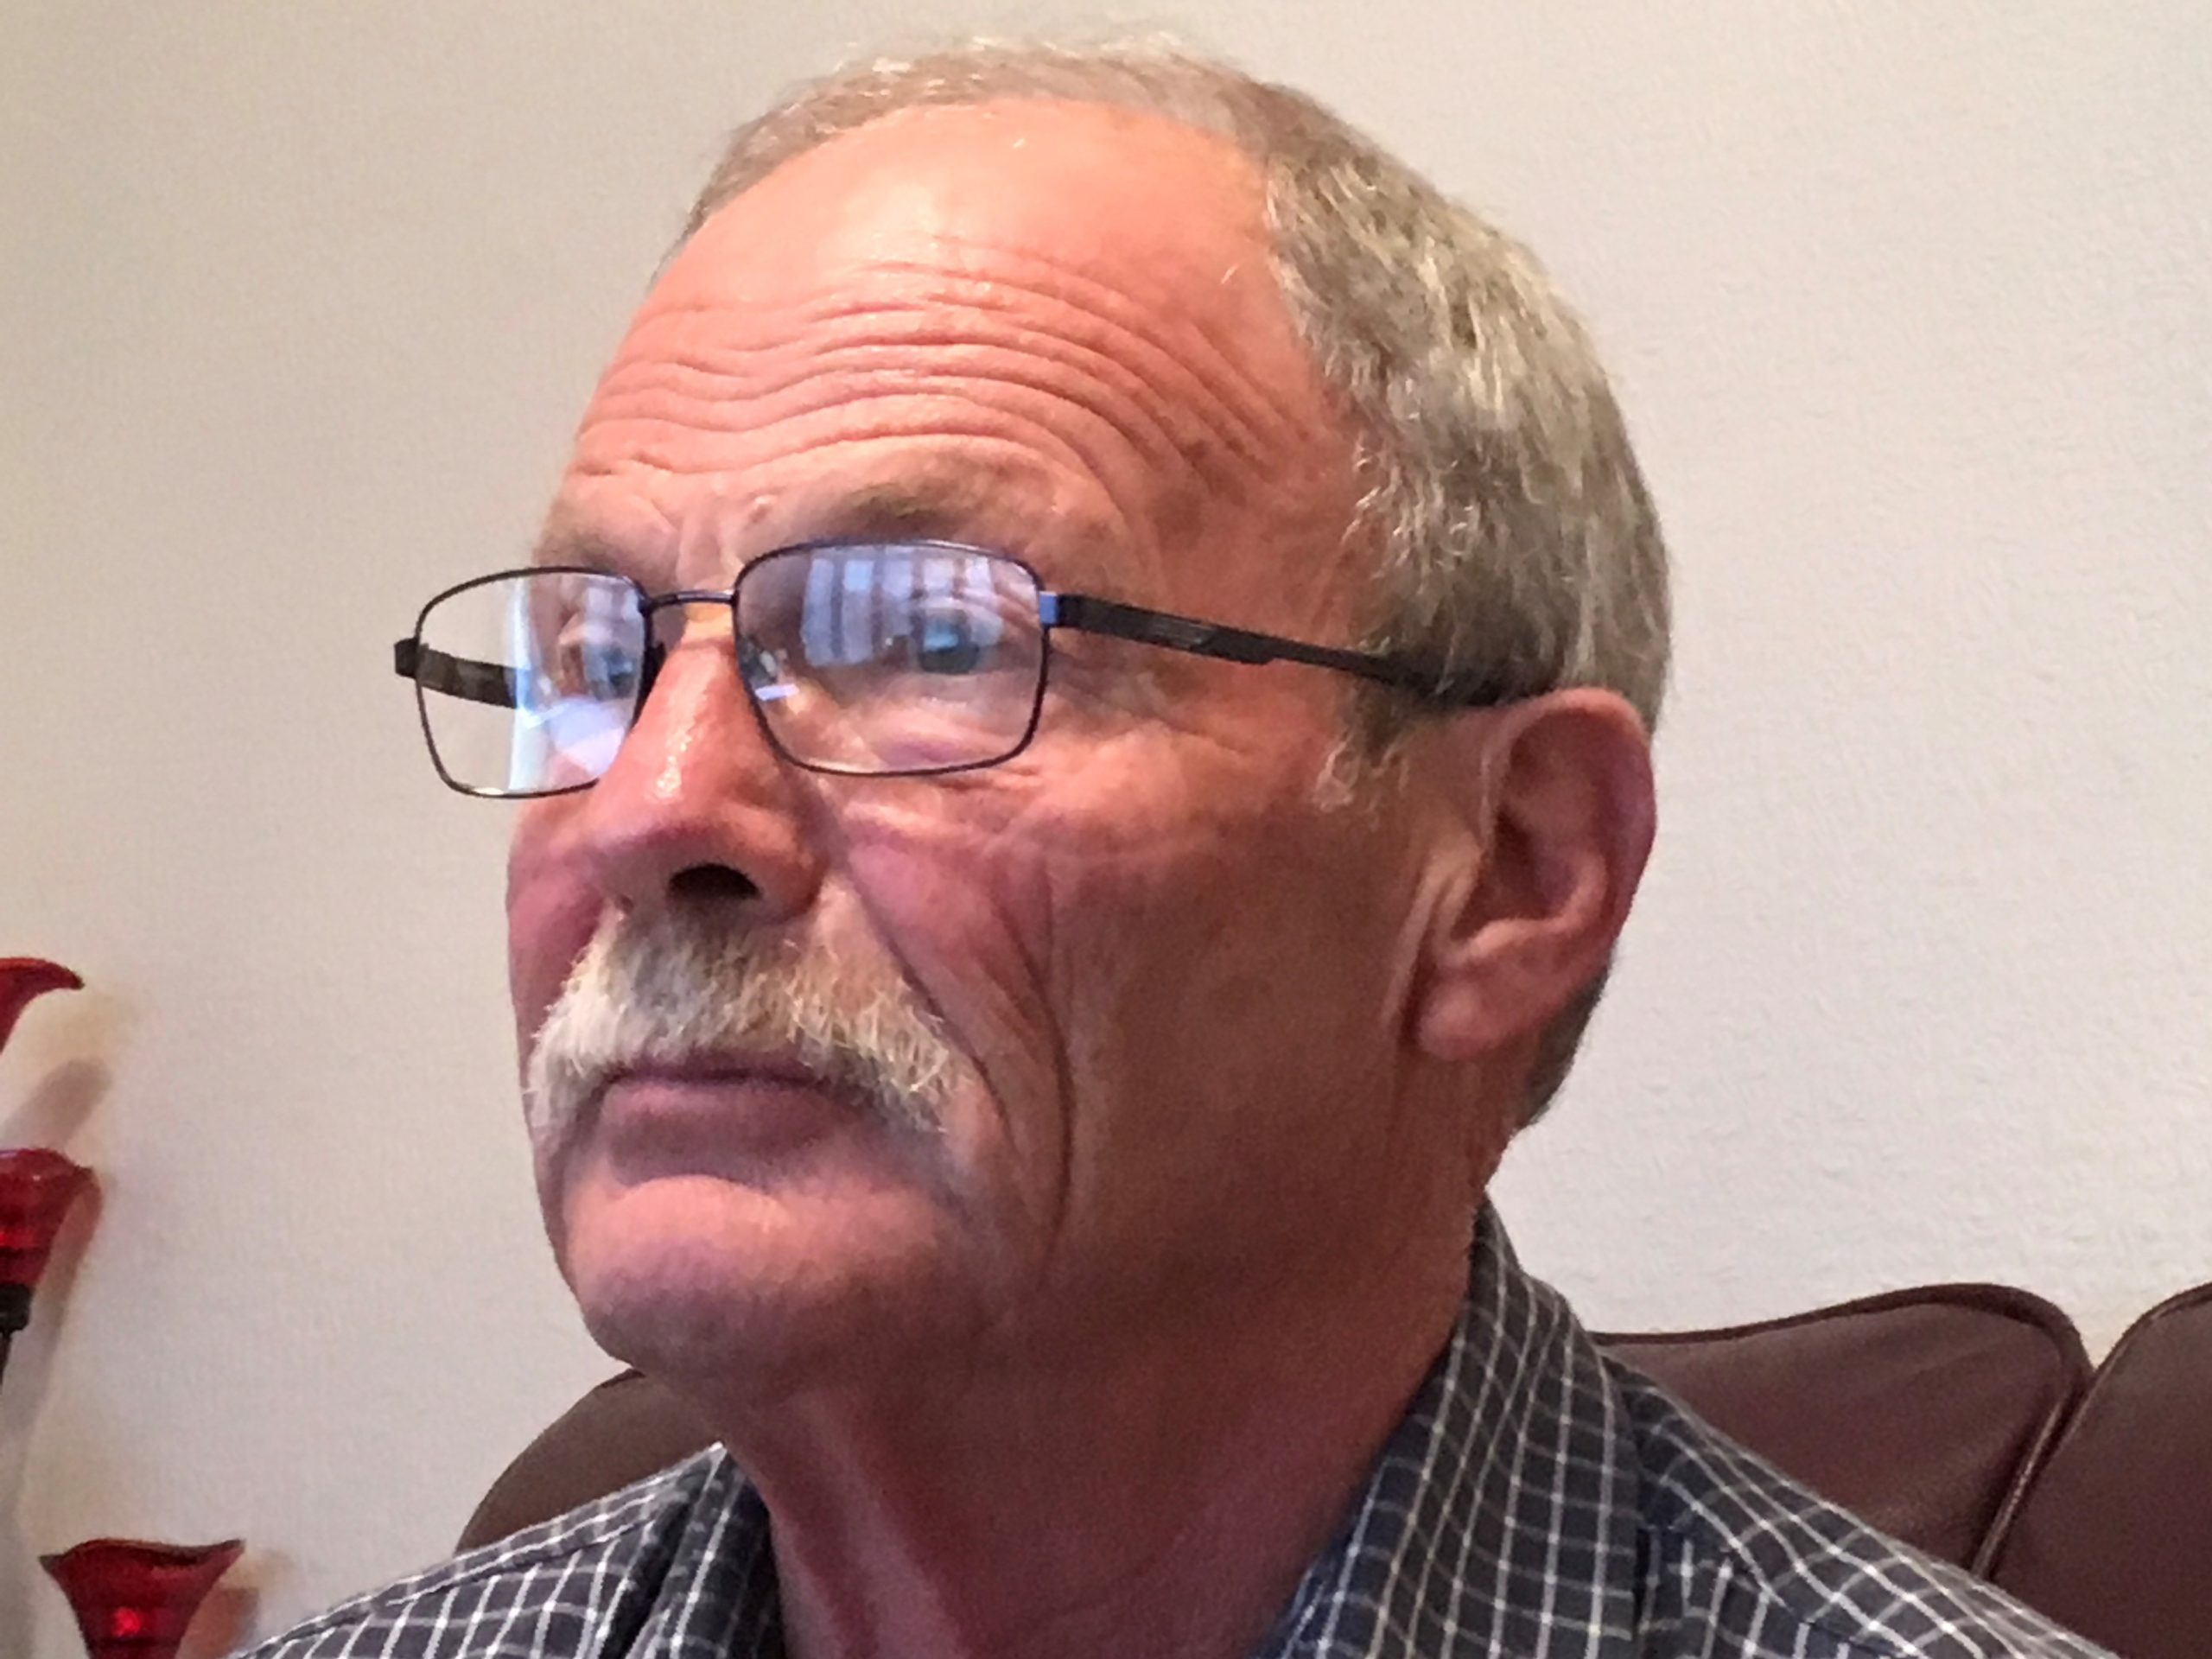 UK Veteran thrilled with his new fully funded hearing aids